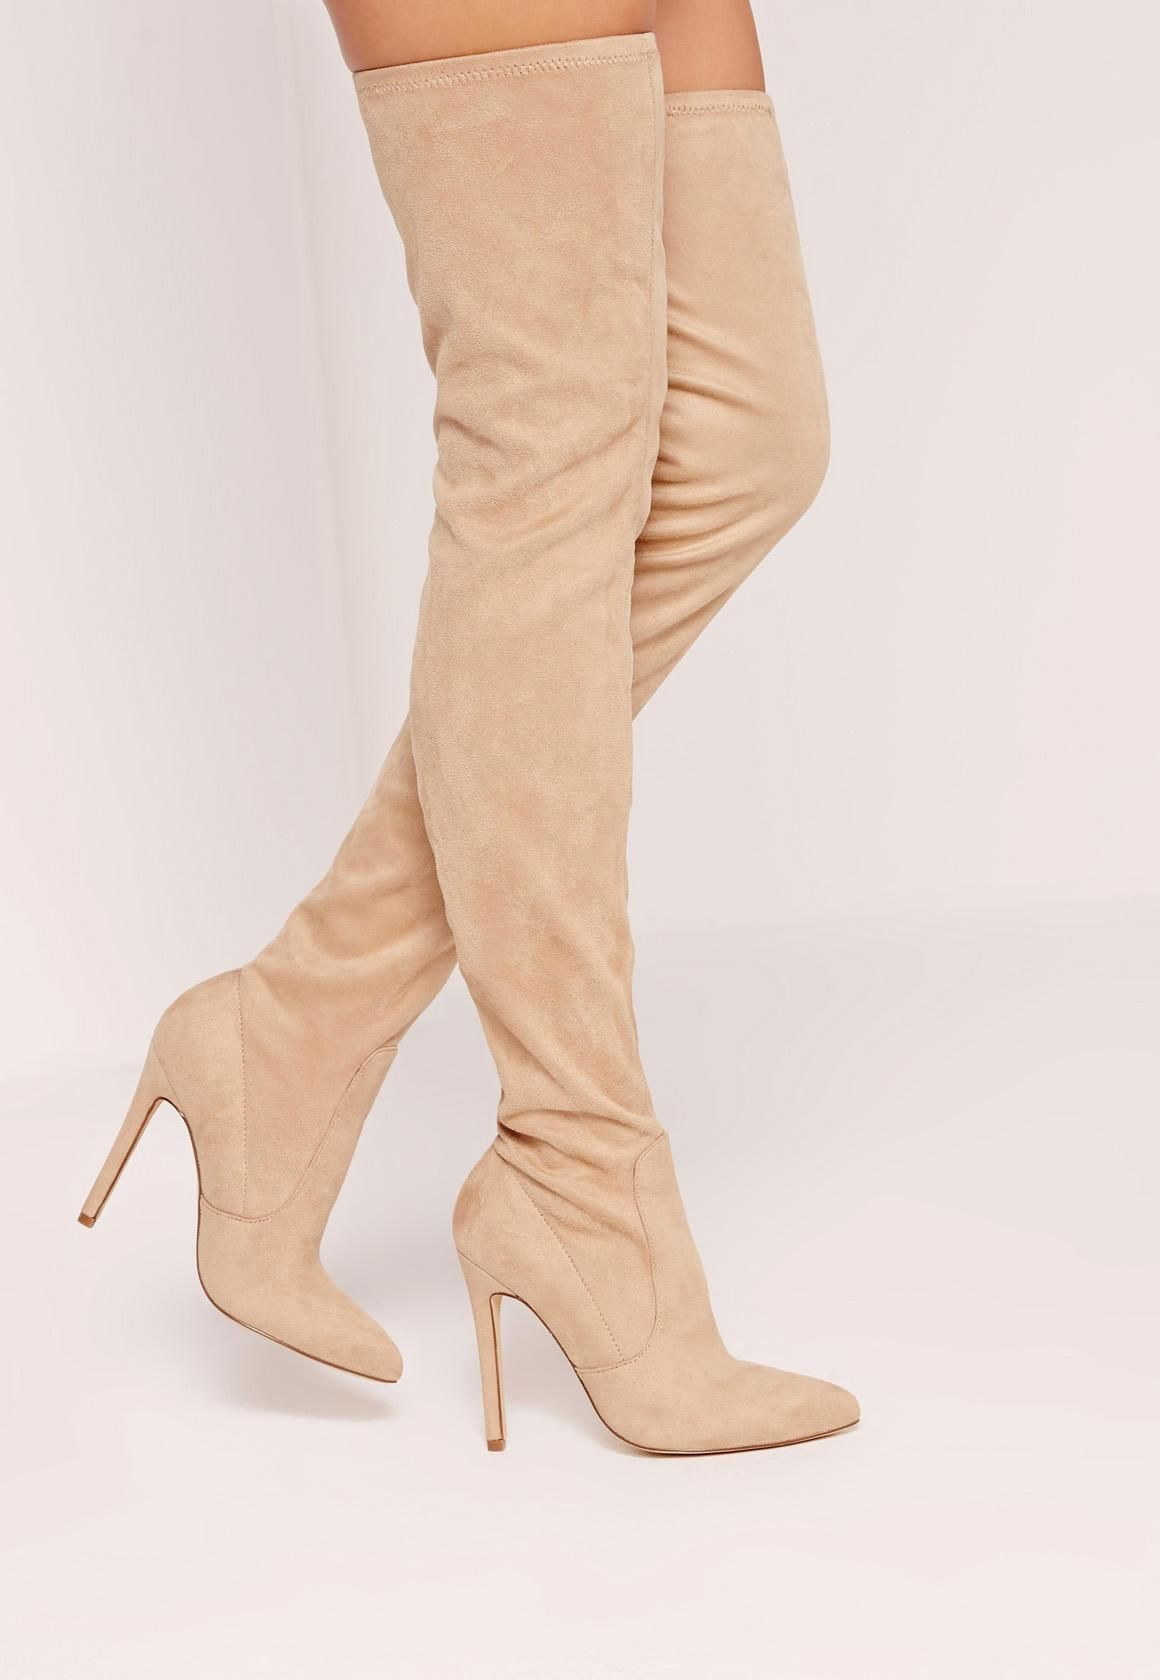 b541f0a32937 Missguided - Nude Faux Suede Pointed Toe Over The Knee Heeled Boots ...